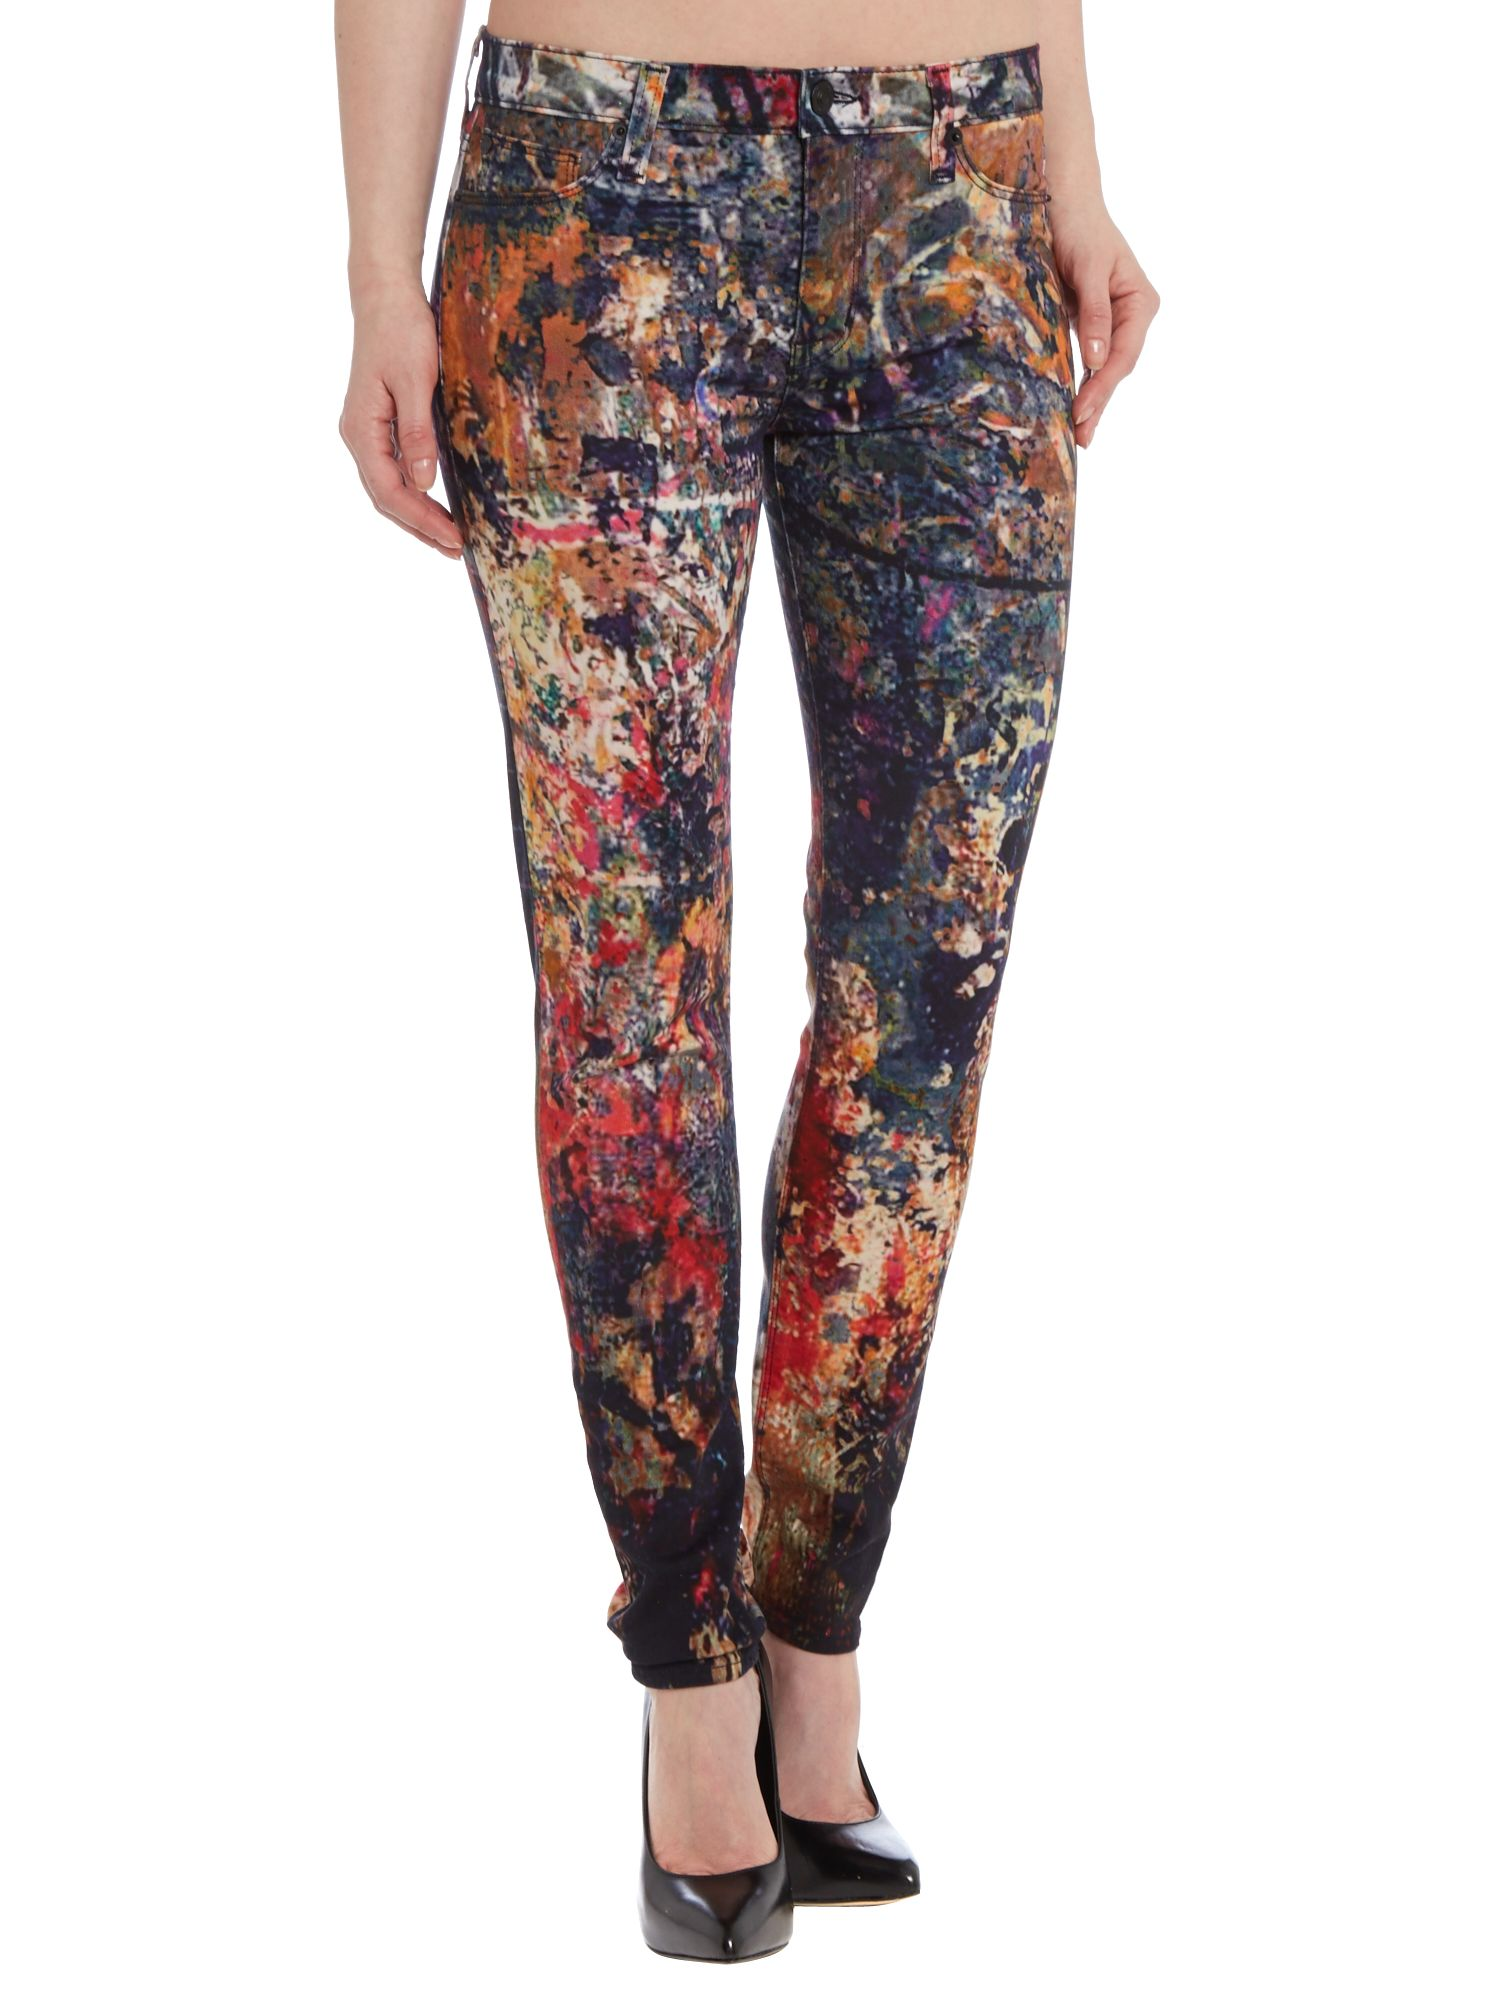 Nico super skinny jeans in last call